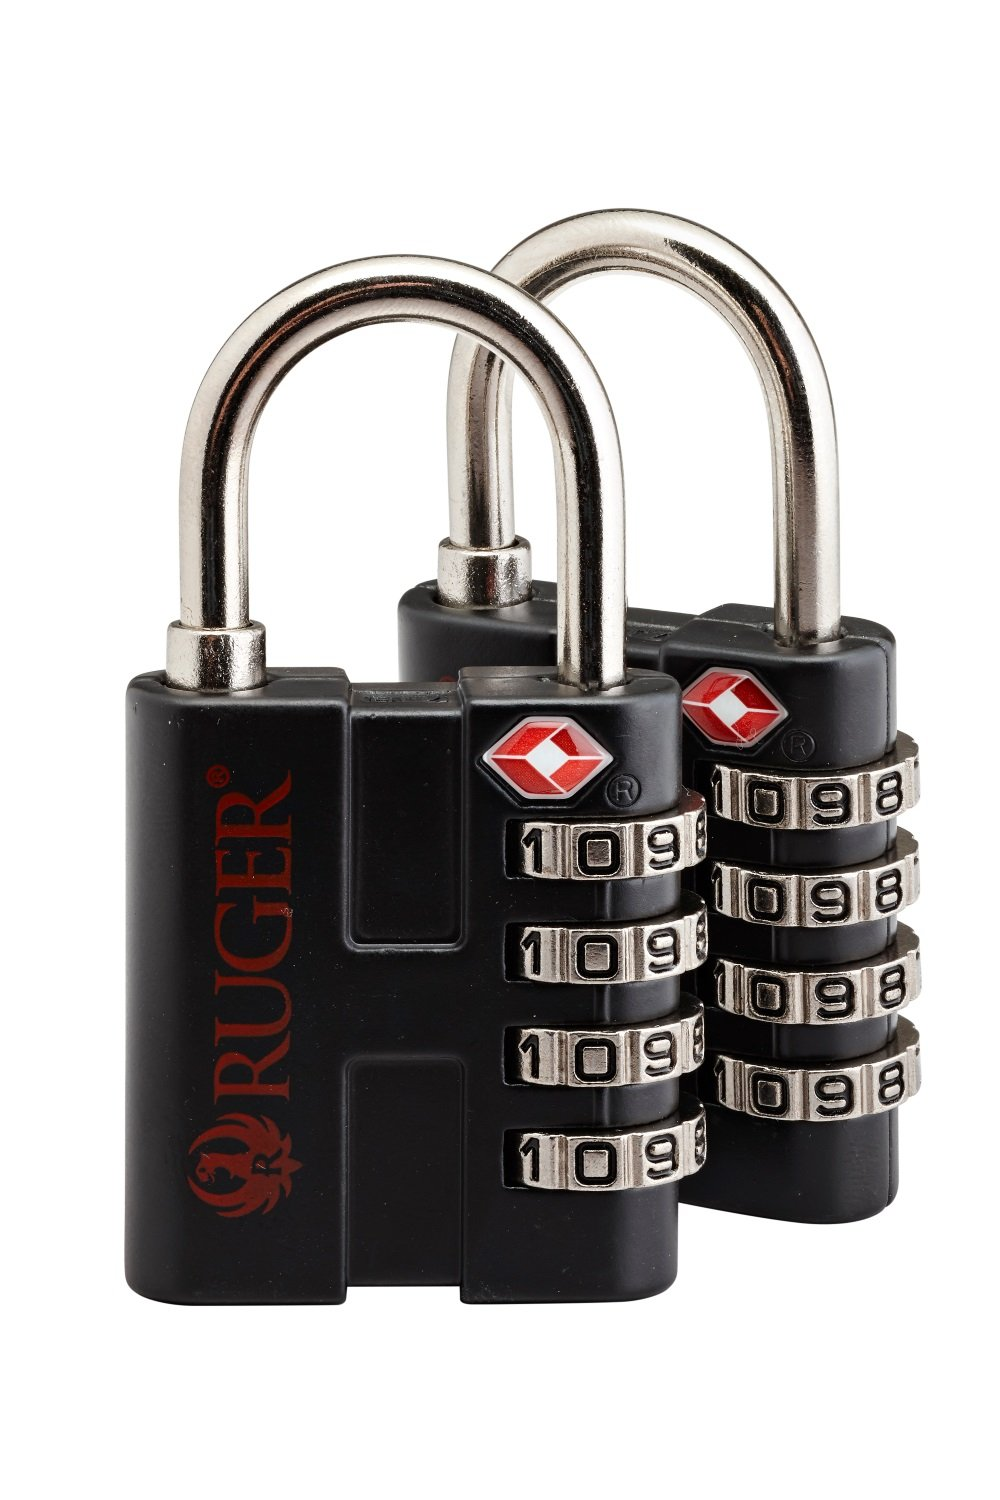 SnapSafe Ruger TSA Approved 4 Digit ''Thick Shackle'' Firearm Cases Luggage Backpacks Computer Bags Combination Padlock (2 Pack)